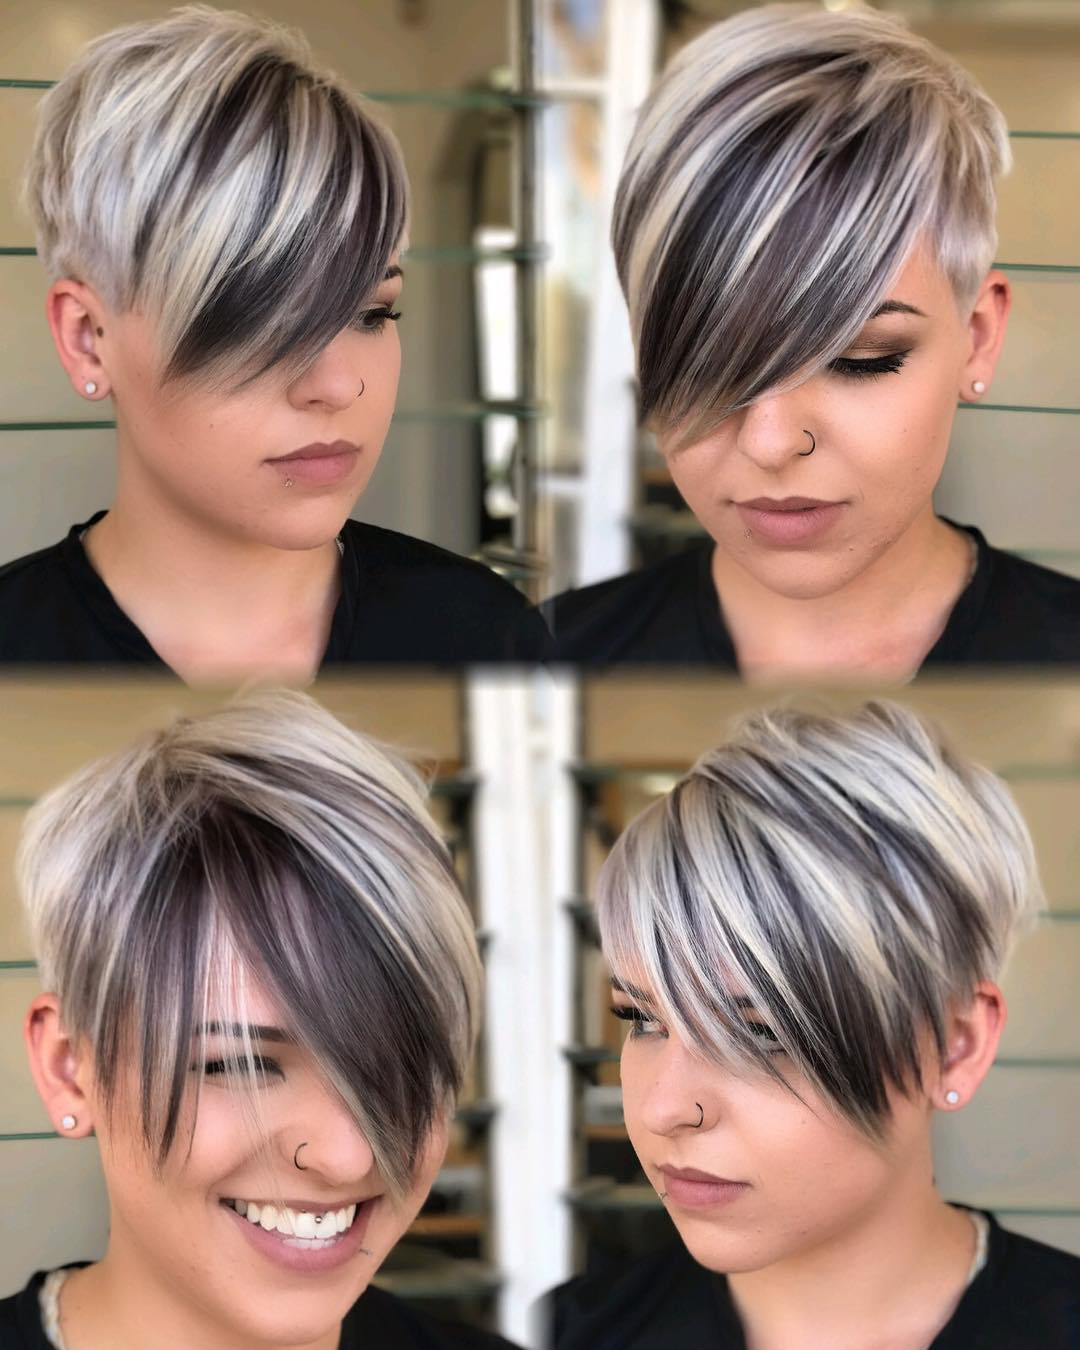 11 Short Hairstyles for Round Faces with Slimming Effect - Hadviser